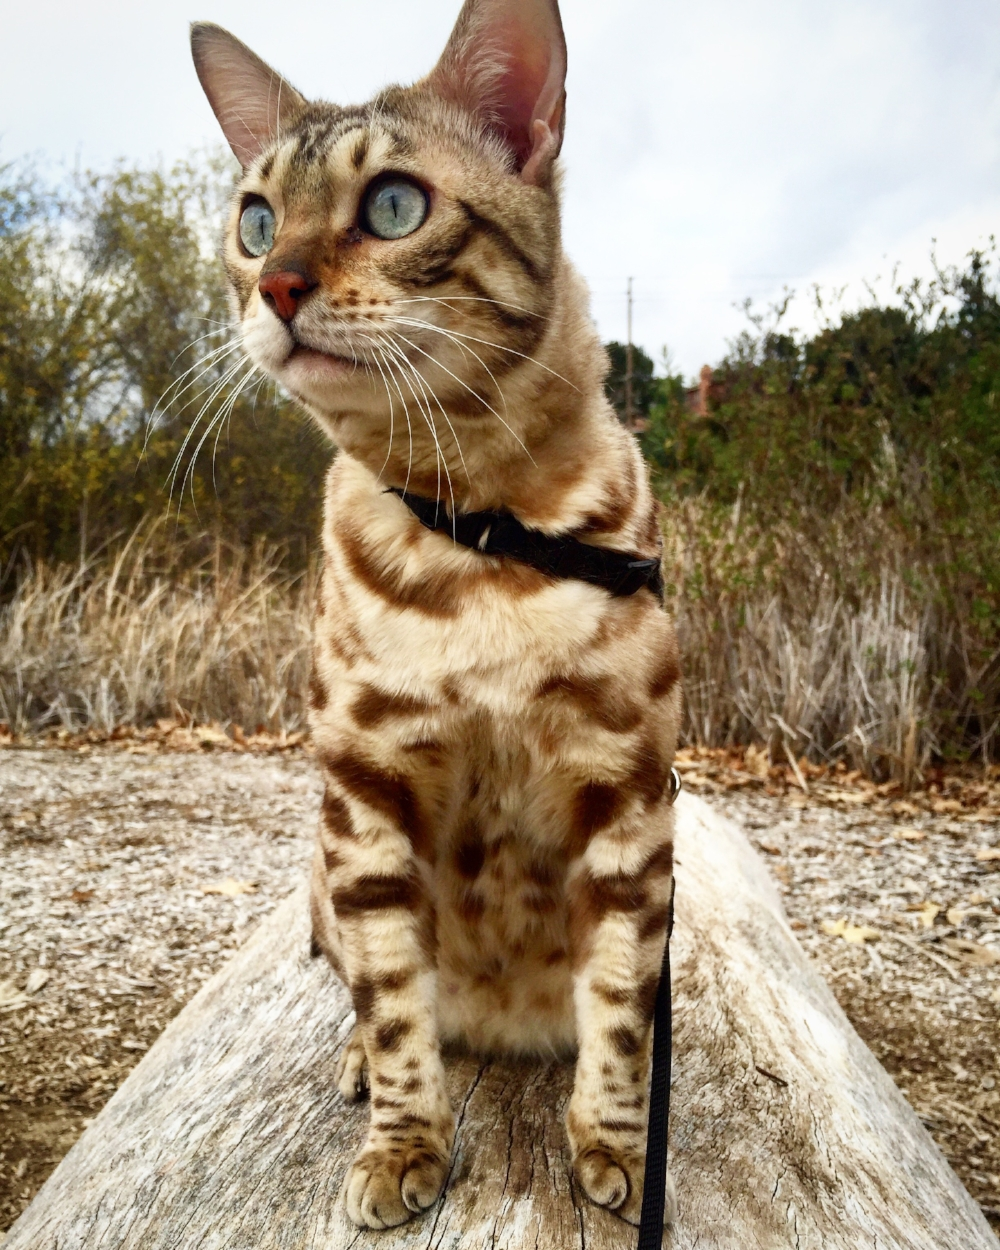 Leo is enjoying a nice walk outside on his leash.